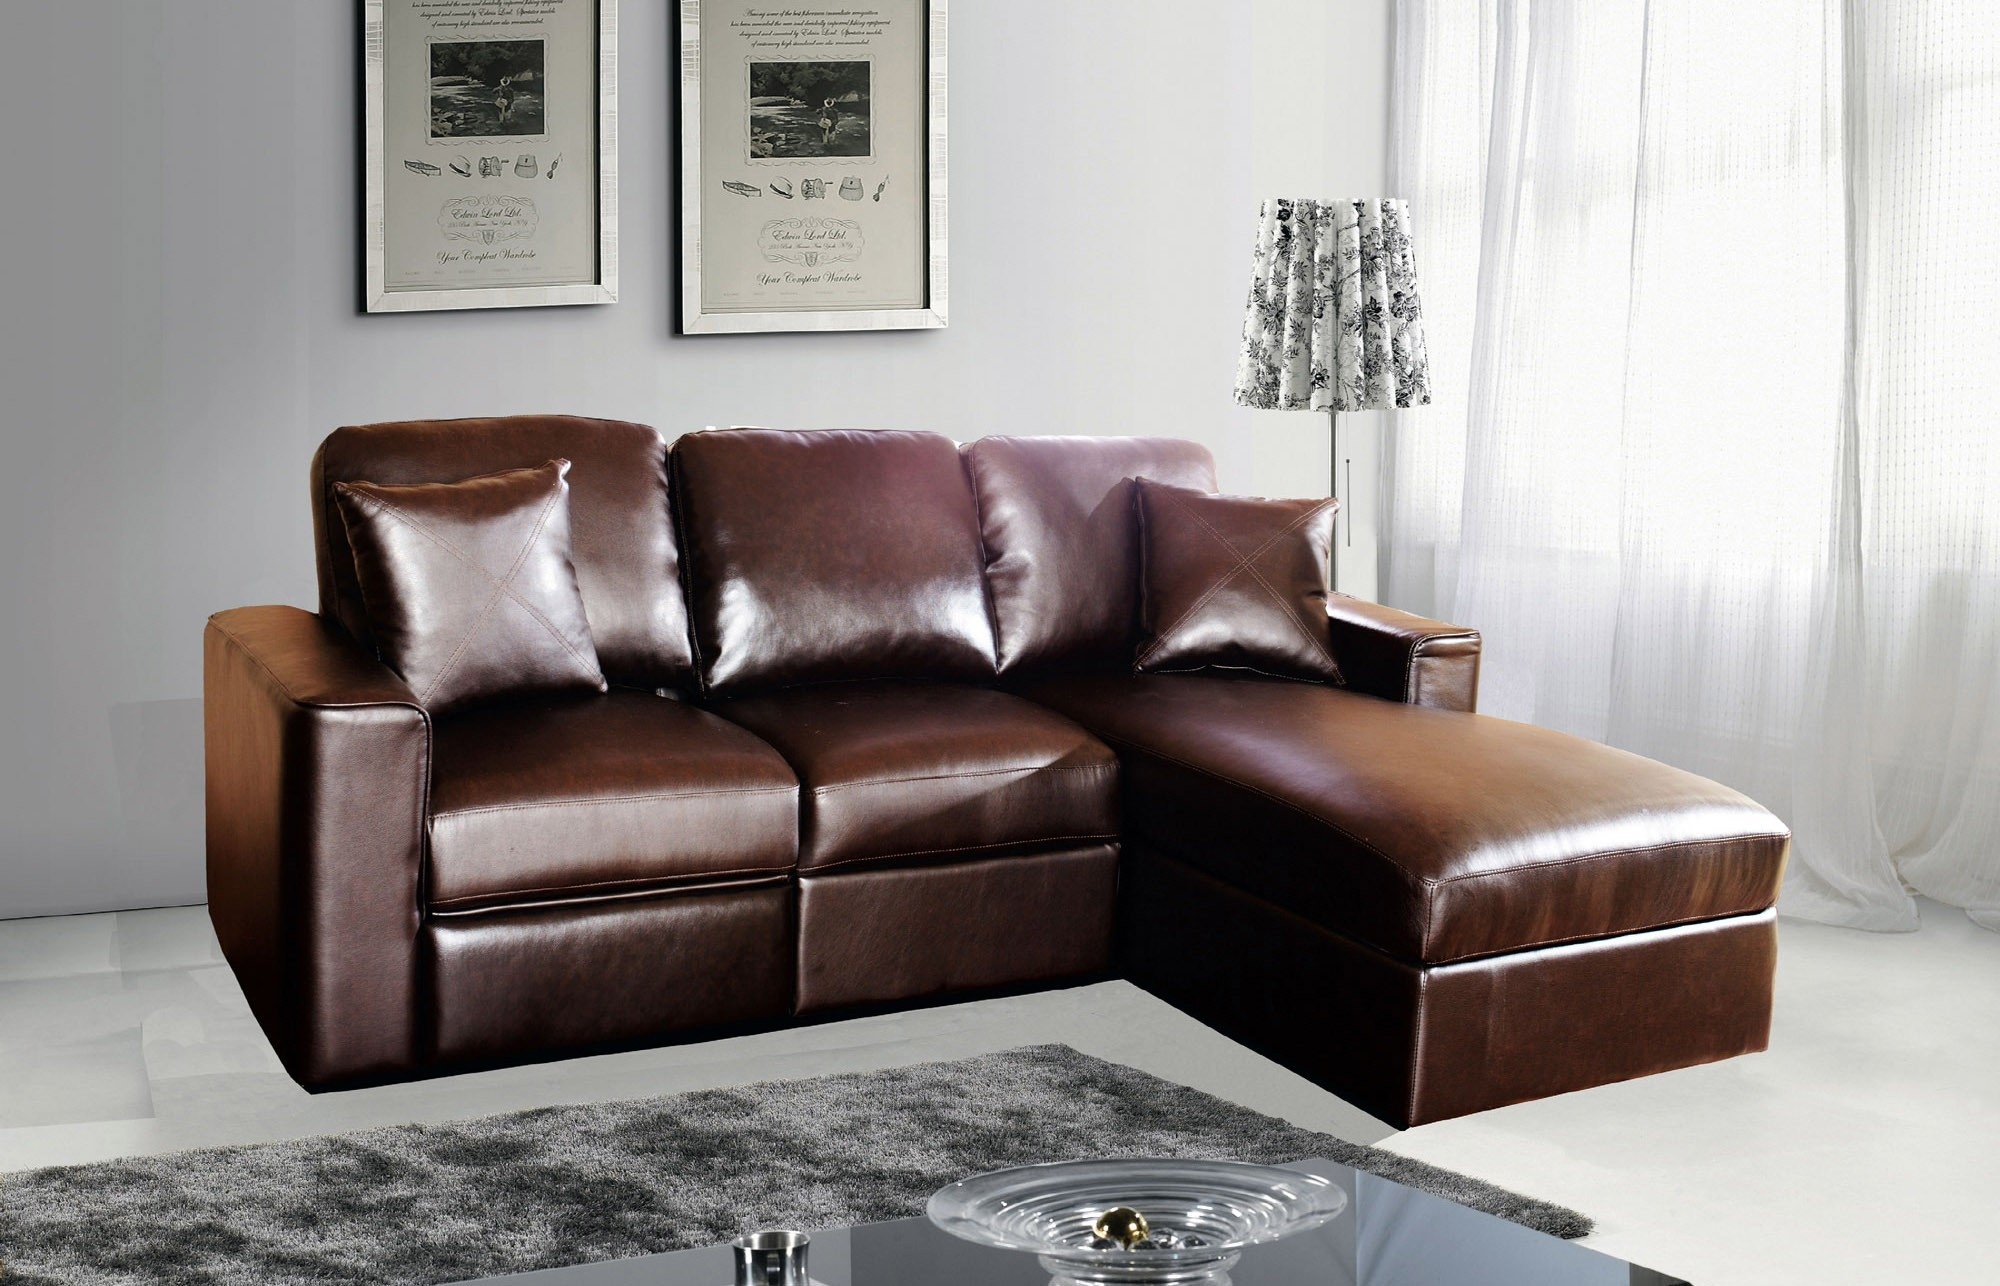 12 Inspirations Of Elegant Sectional Sofas